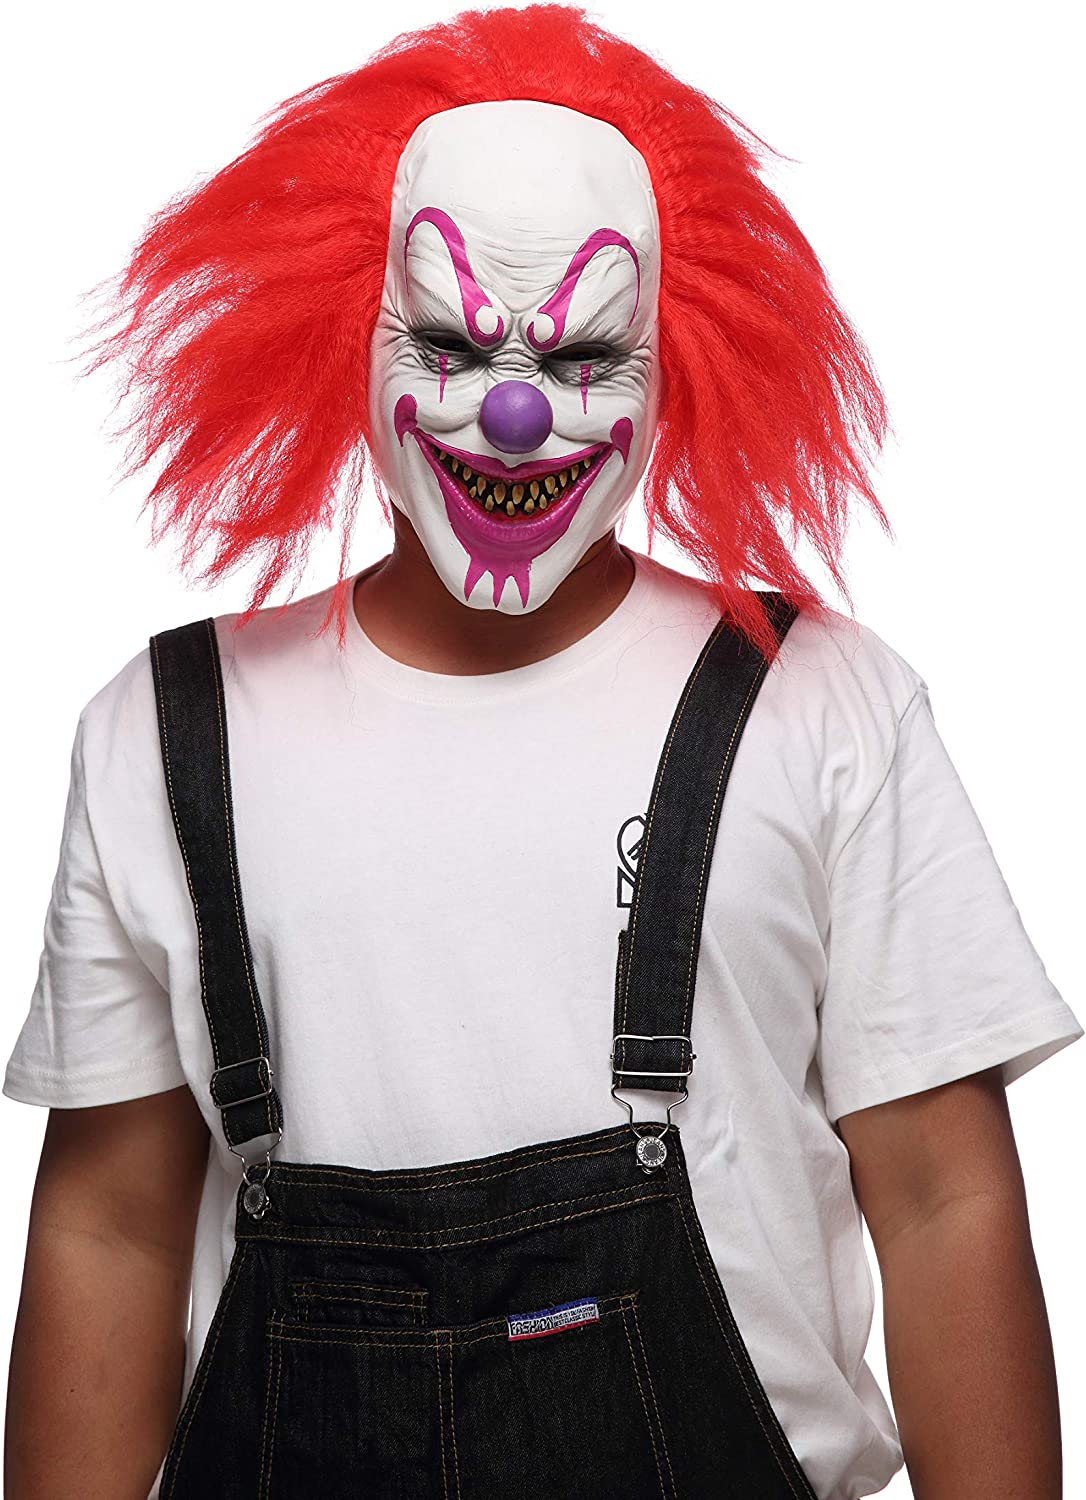 Childrens Halloween Killer Clown Latex Face Mask INCLUDES FACE MASK ONLY